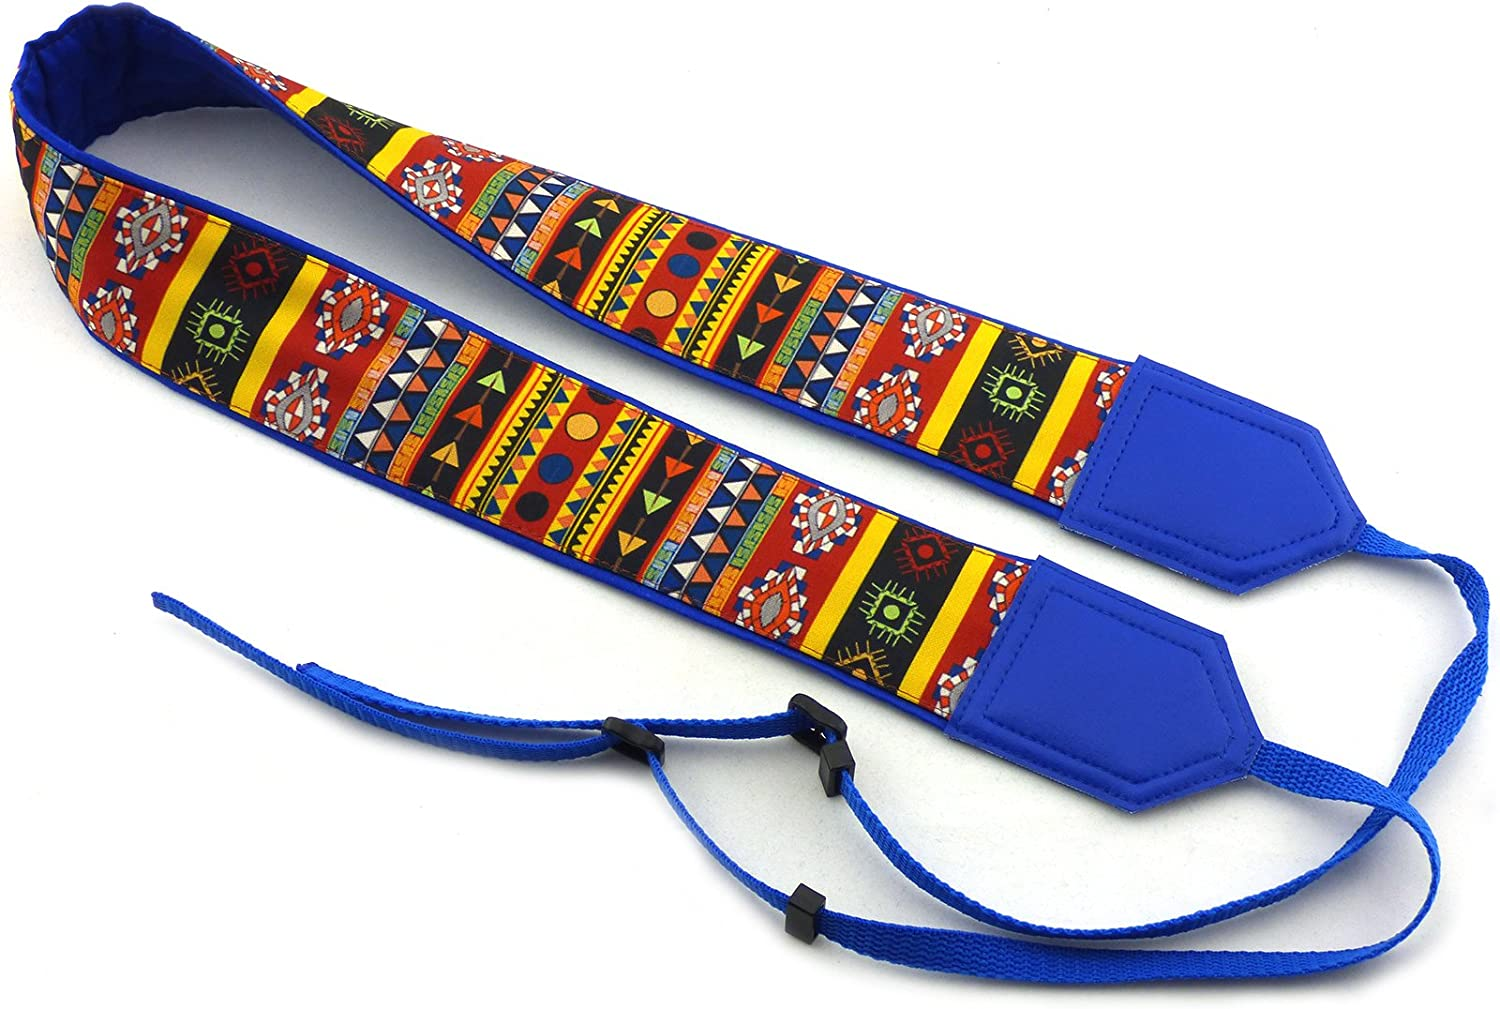 Code 00044 Colorful Indian Camera Strap Durable InTePro Aztec Camera Strap DSLR//SLR Camera Strap Black Tribal Camera Strap Light Weight and Well Padded Camera Strap